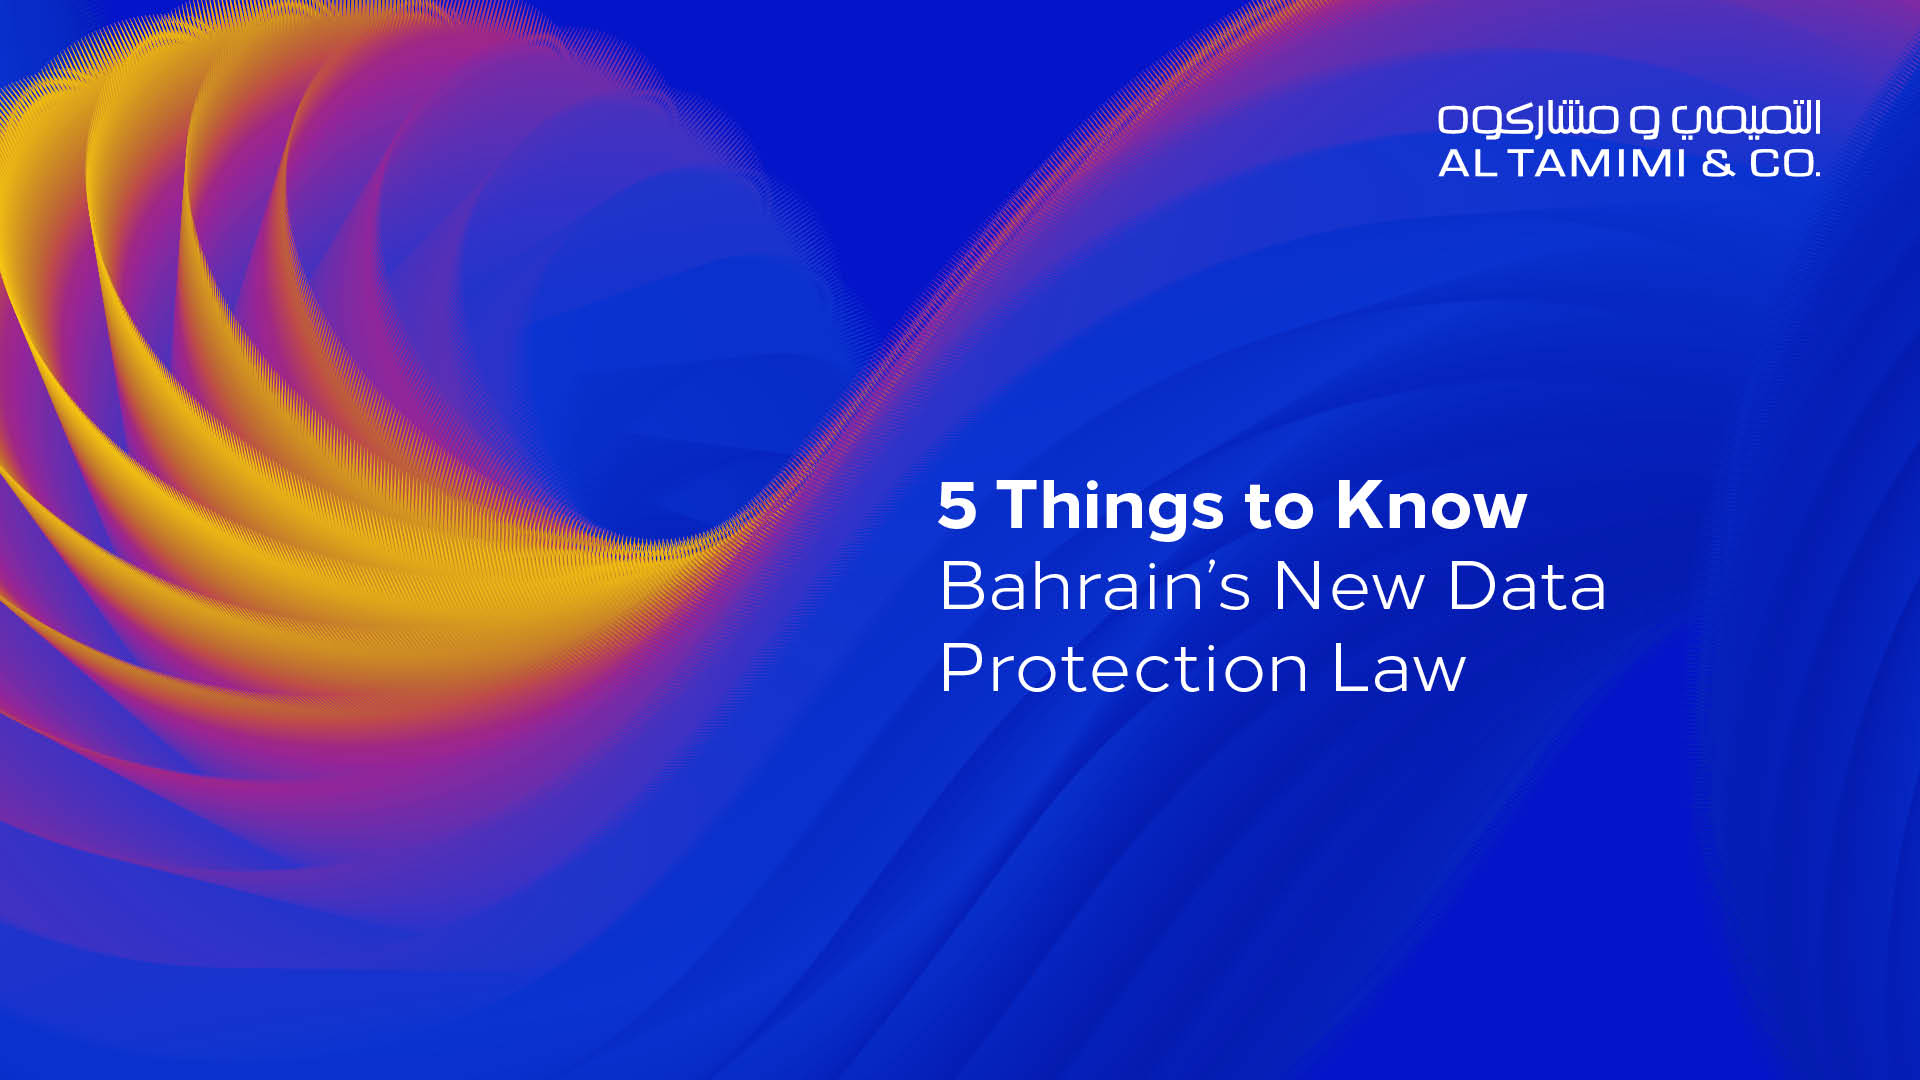 5 Things to know about the New Data Protection Law